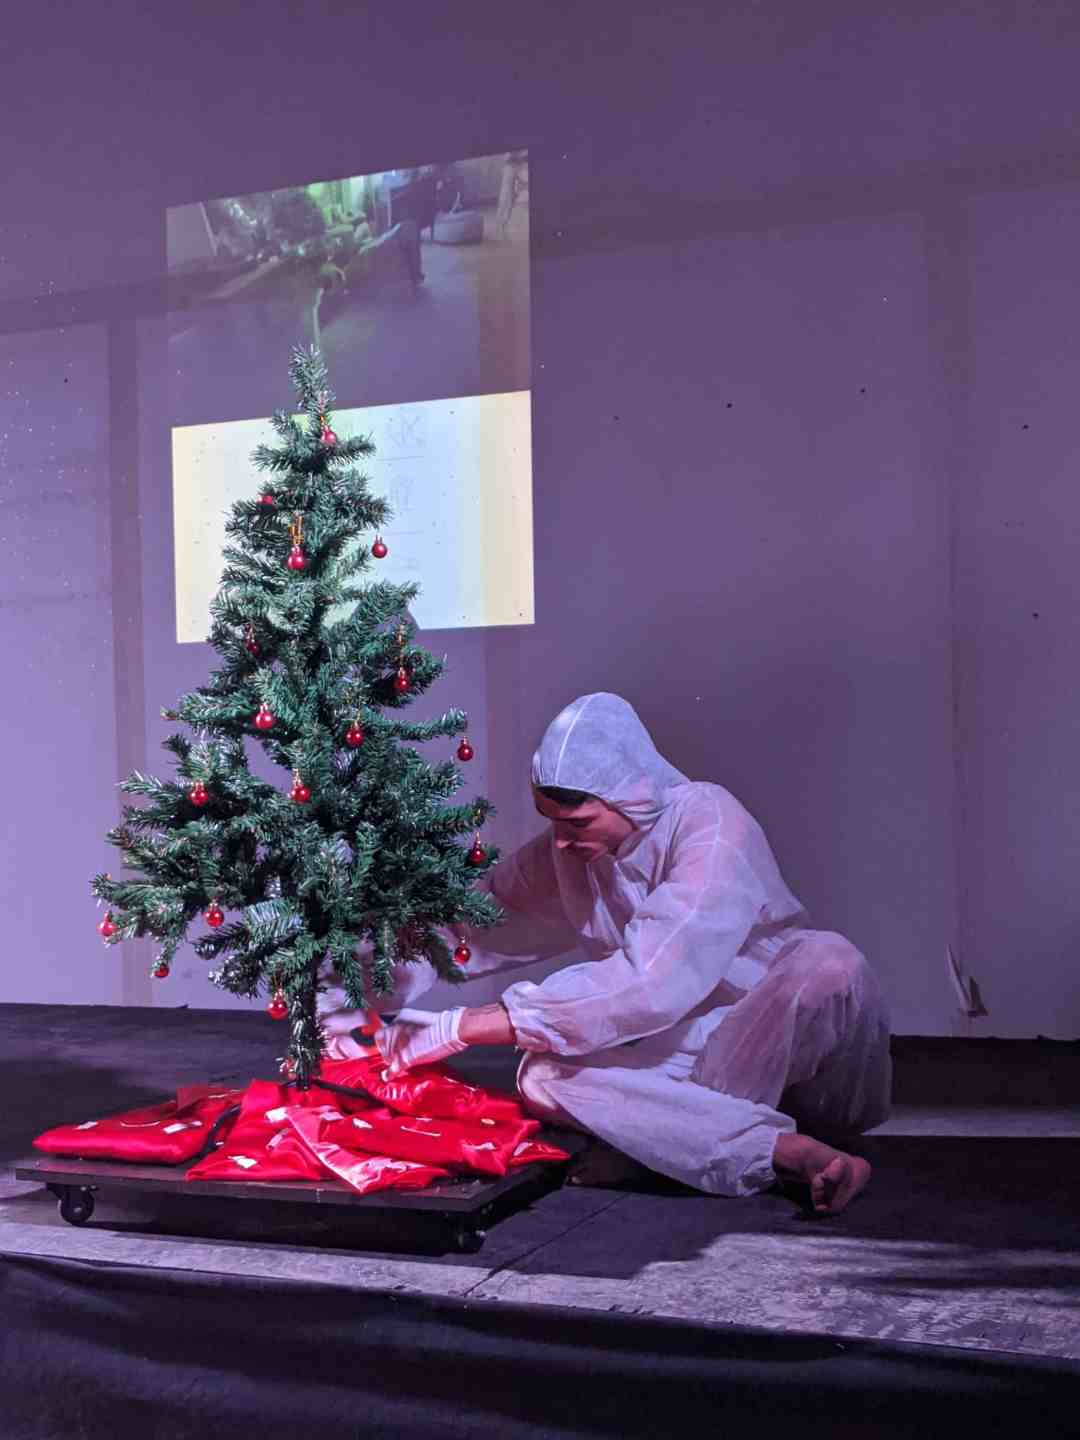 ©®38191613162016135195209451435, 'The Gift', AuctionCR28112019, 2019. Performance, curated by Belinda Martin Porras, The Biscuit Factory, London